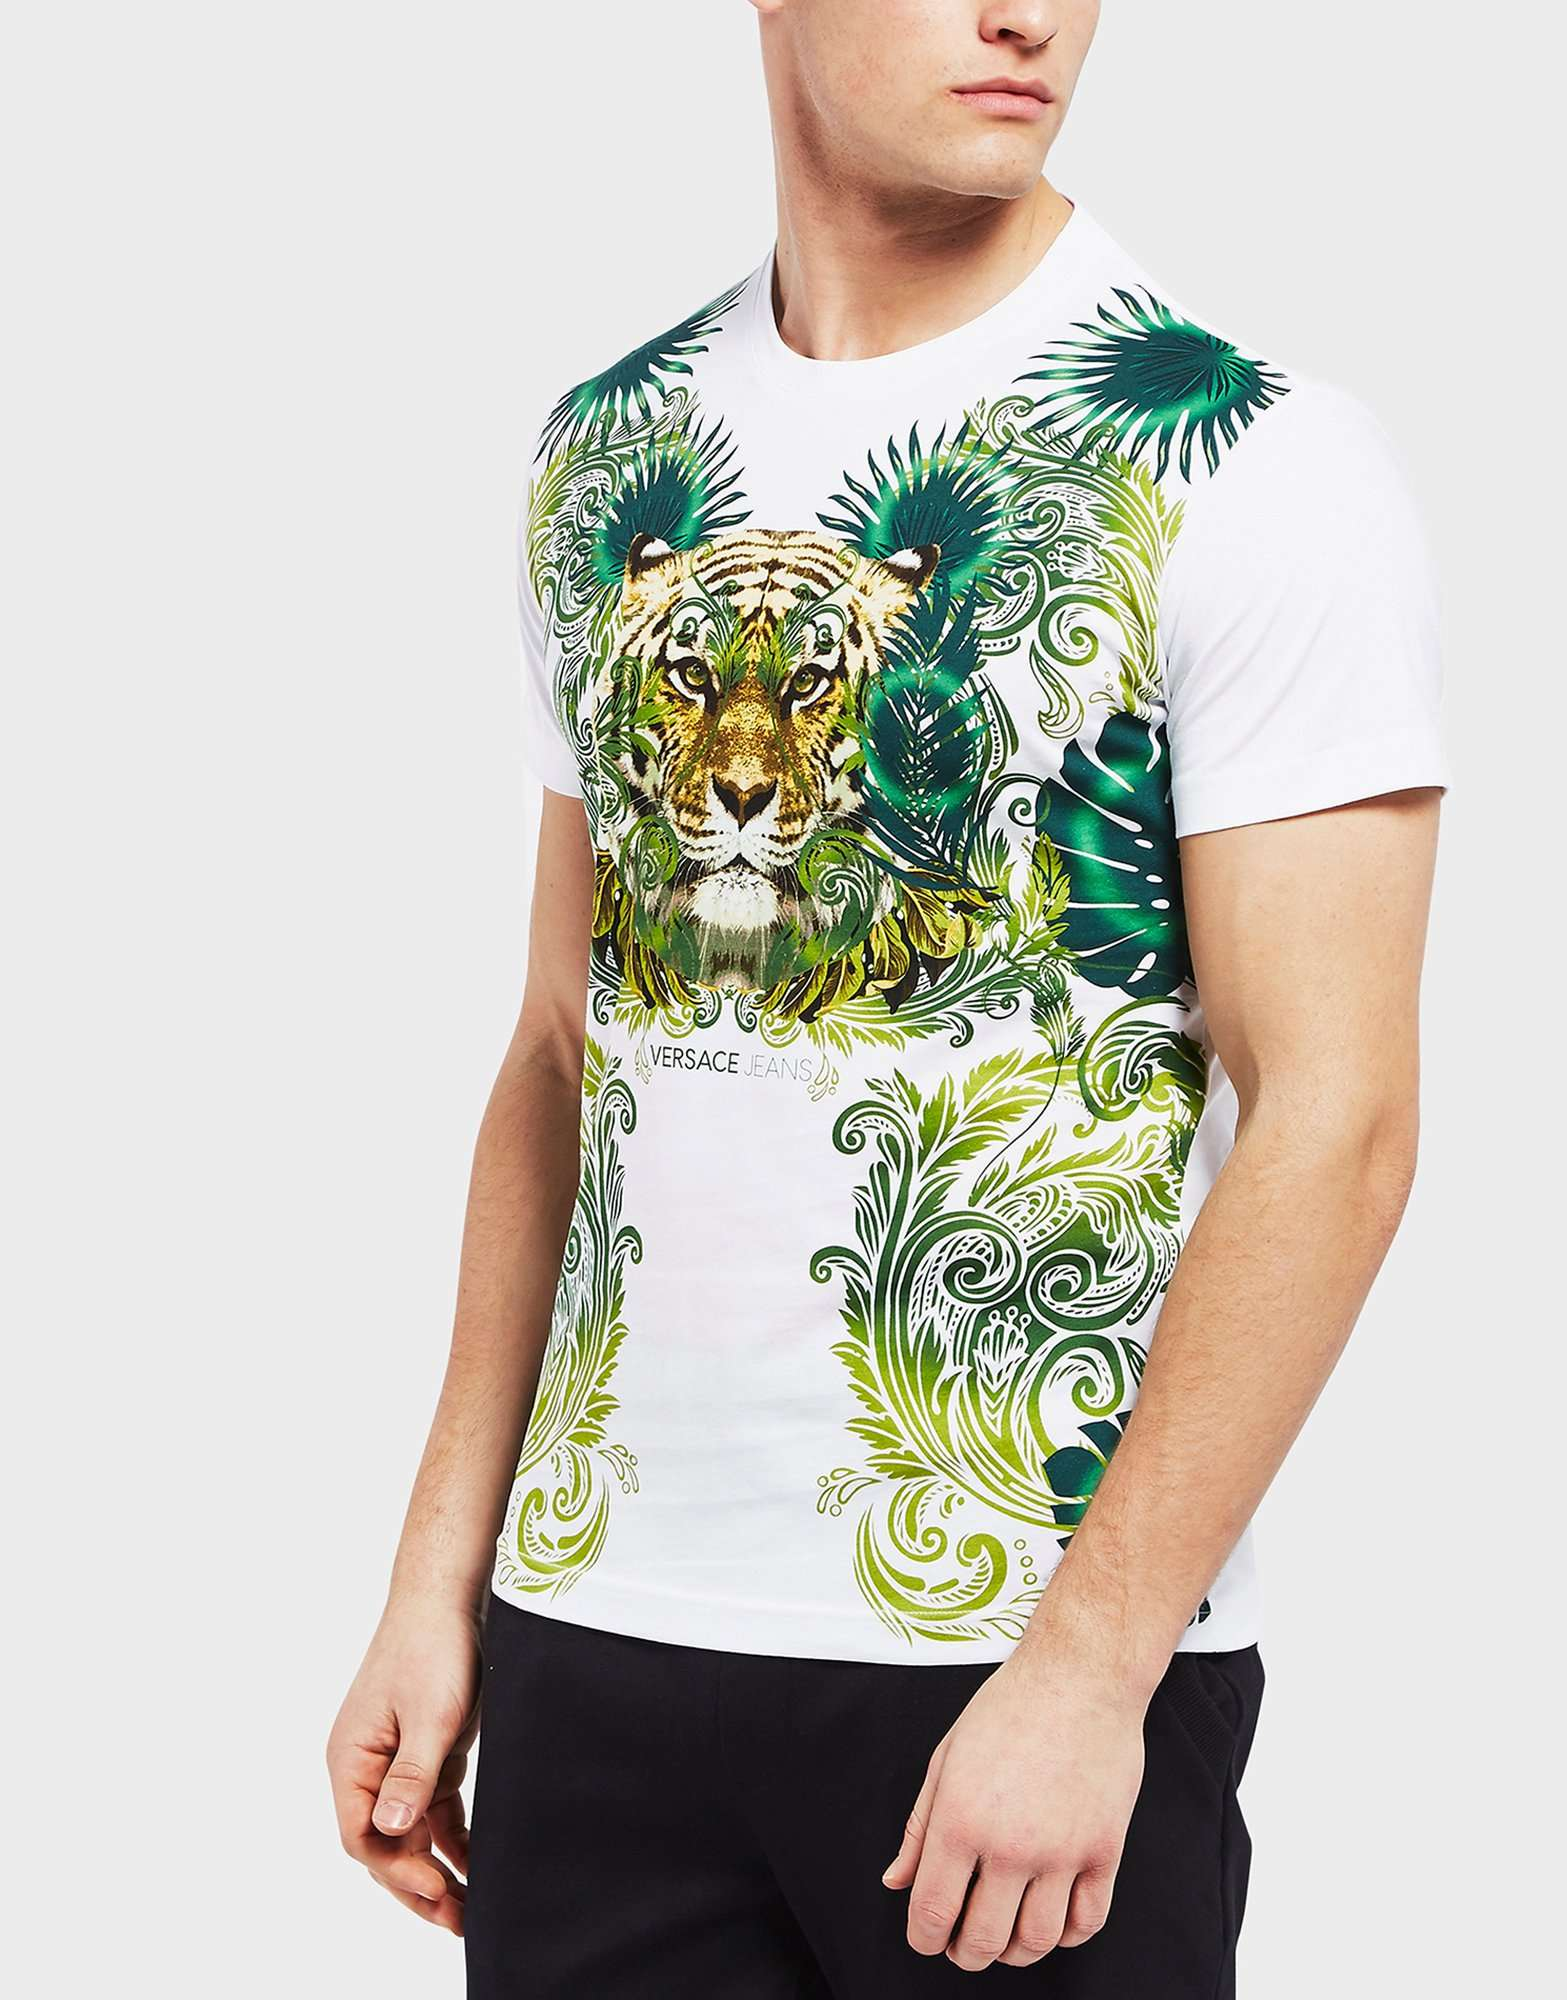 eea57787 Versace Jeans T Shirt In White With Tiger Jungle Print